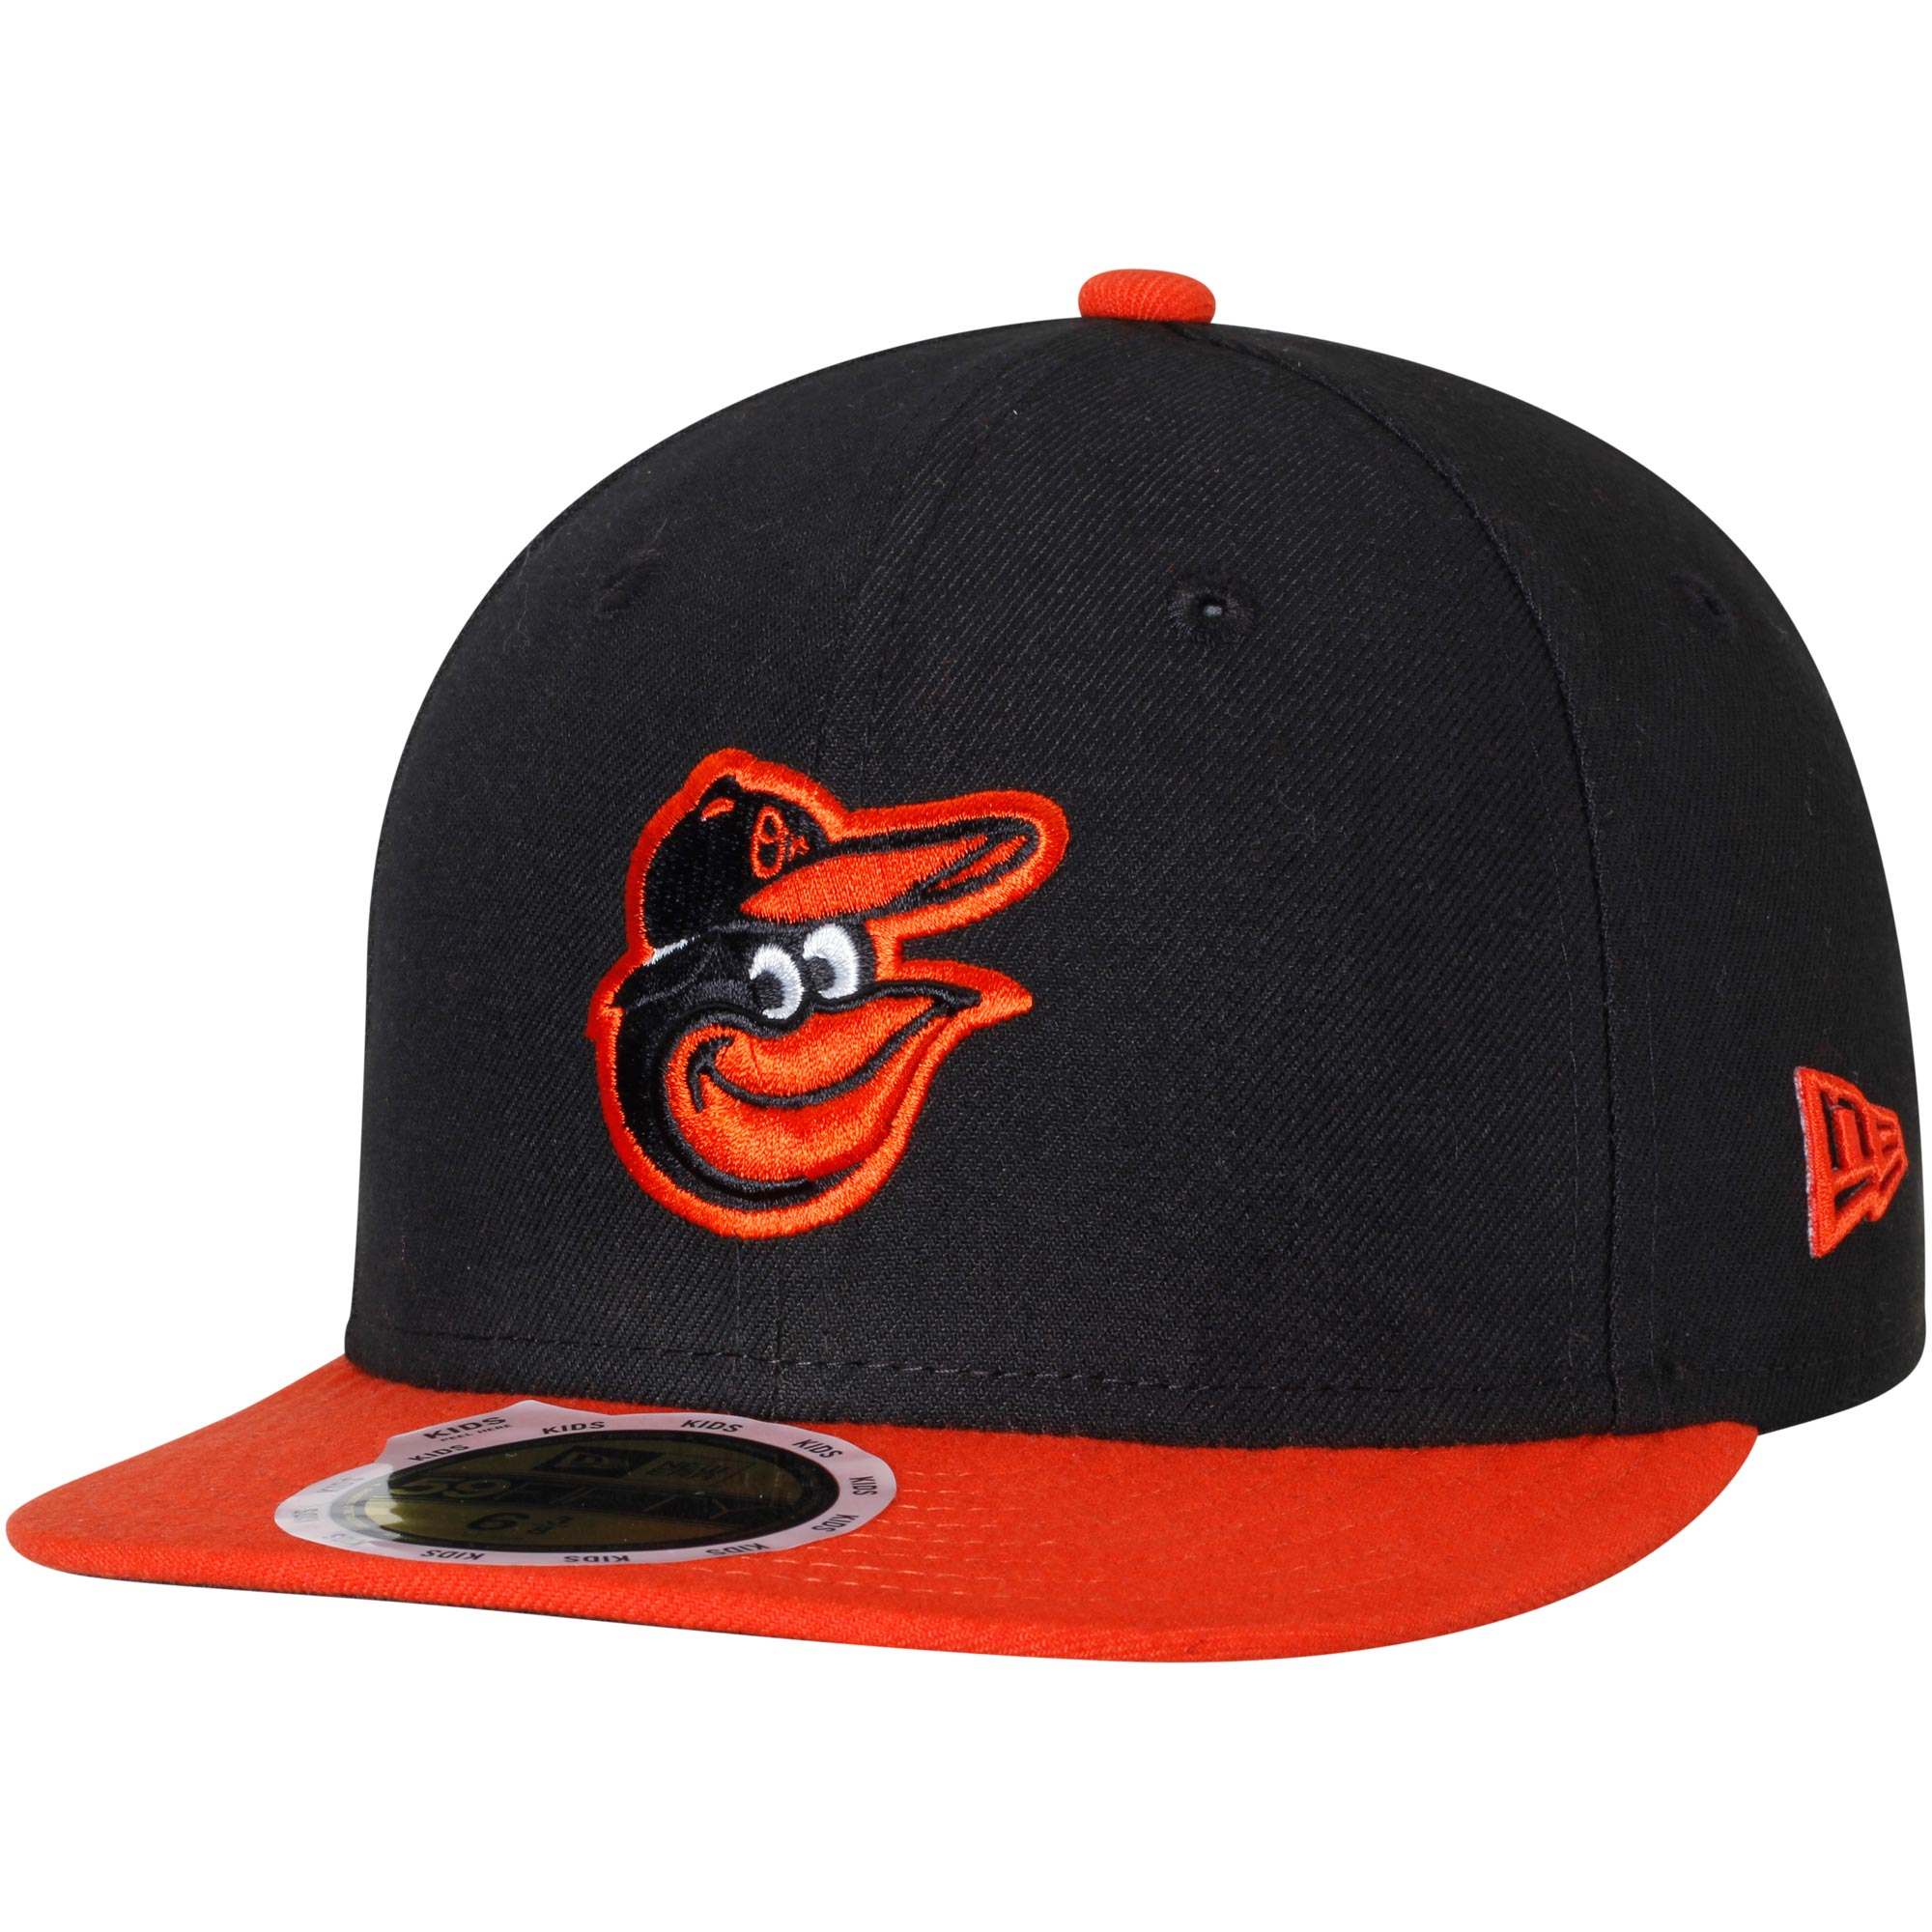 Baltimore Orioles New Era Youth Authentic Collection On-Field Road 59FIFTY Fitted Hat - Black/Orange